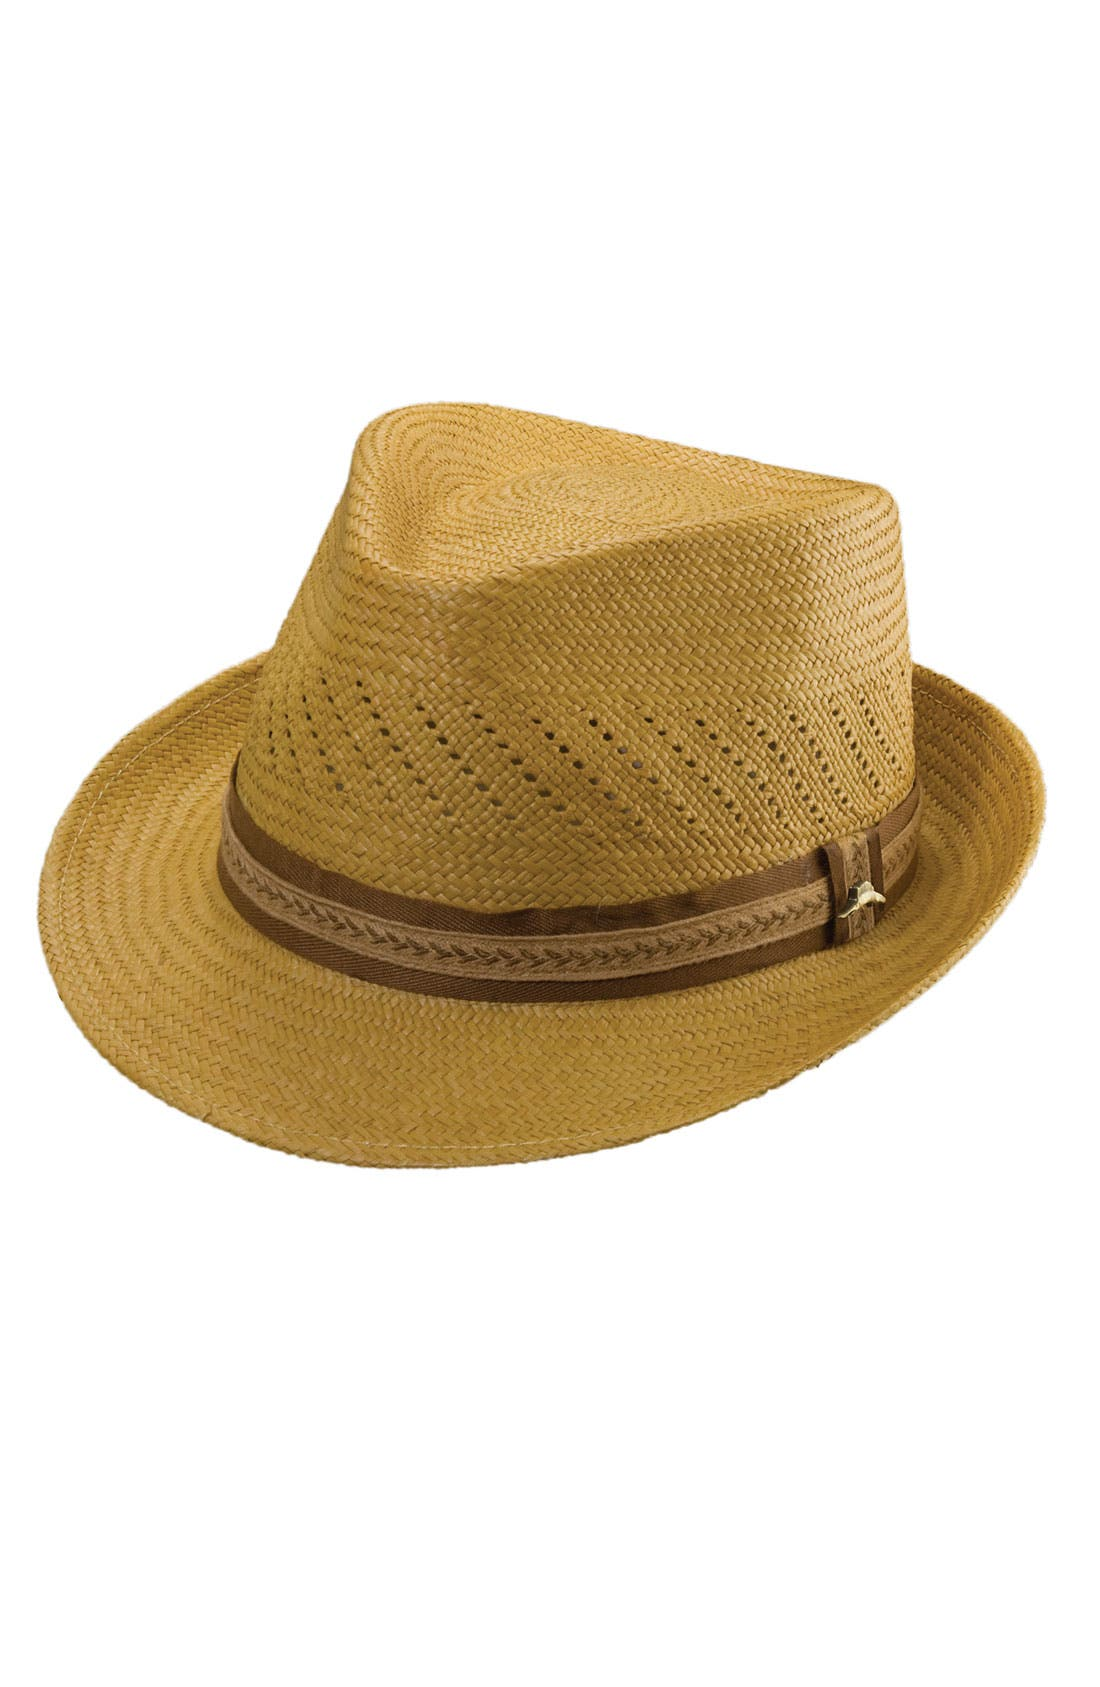 Main Image - Tommy Bahama Perforated Panama Straw Fedora